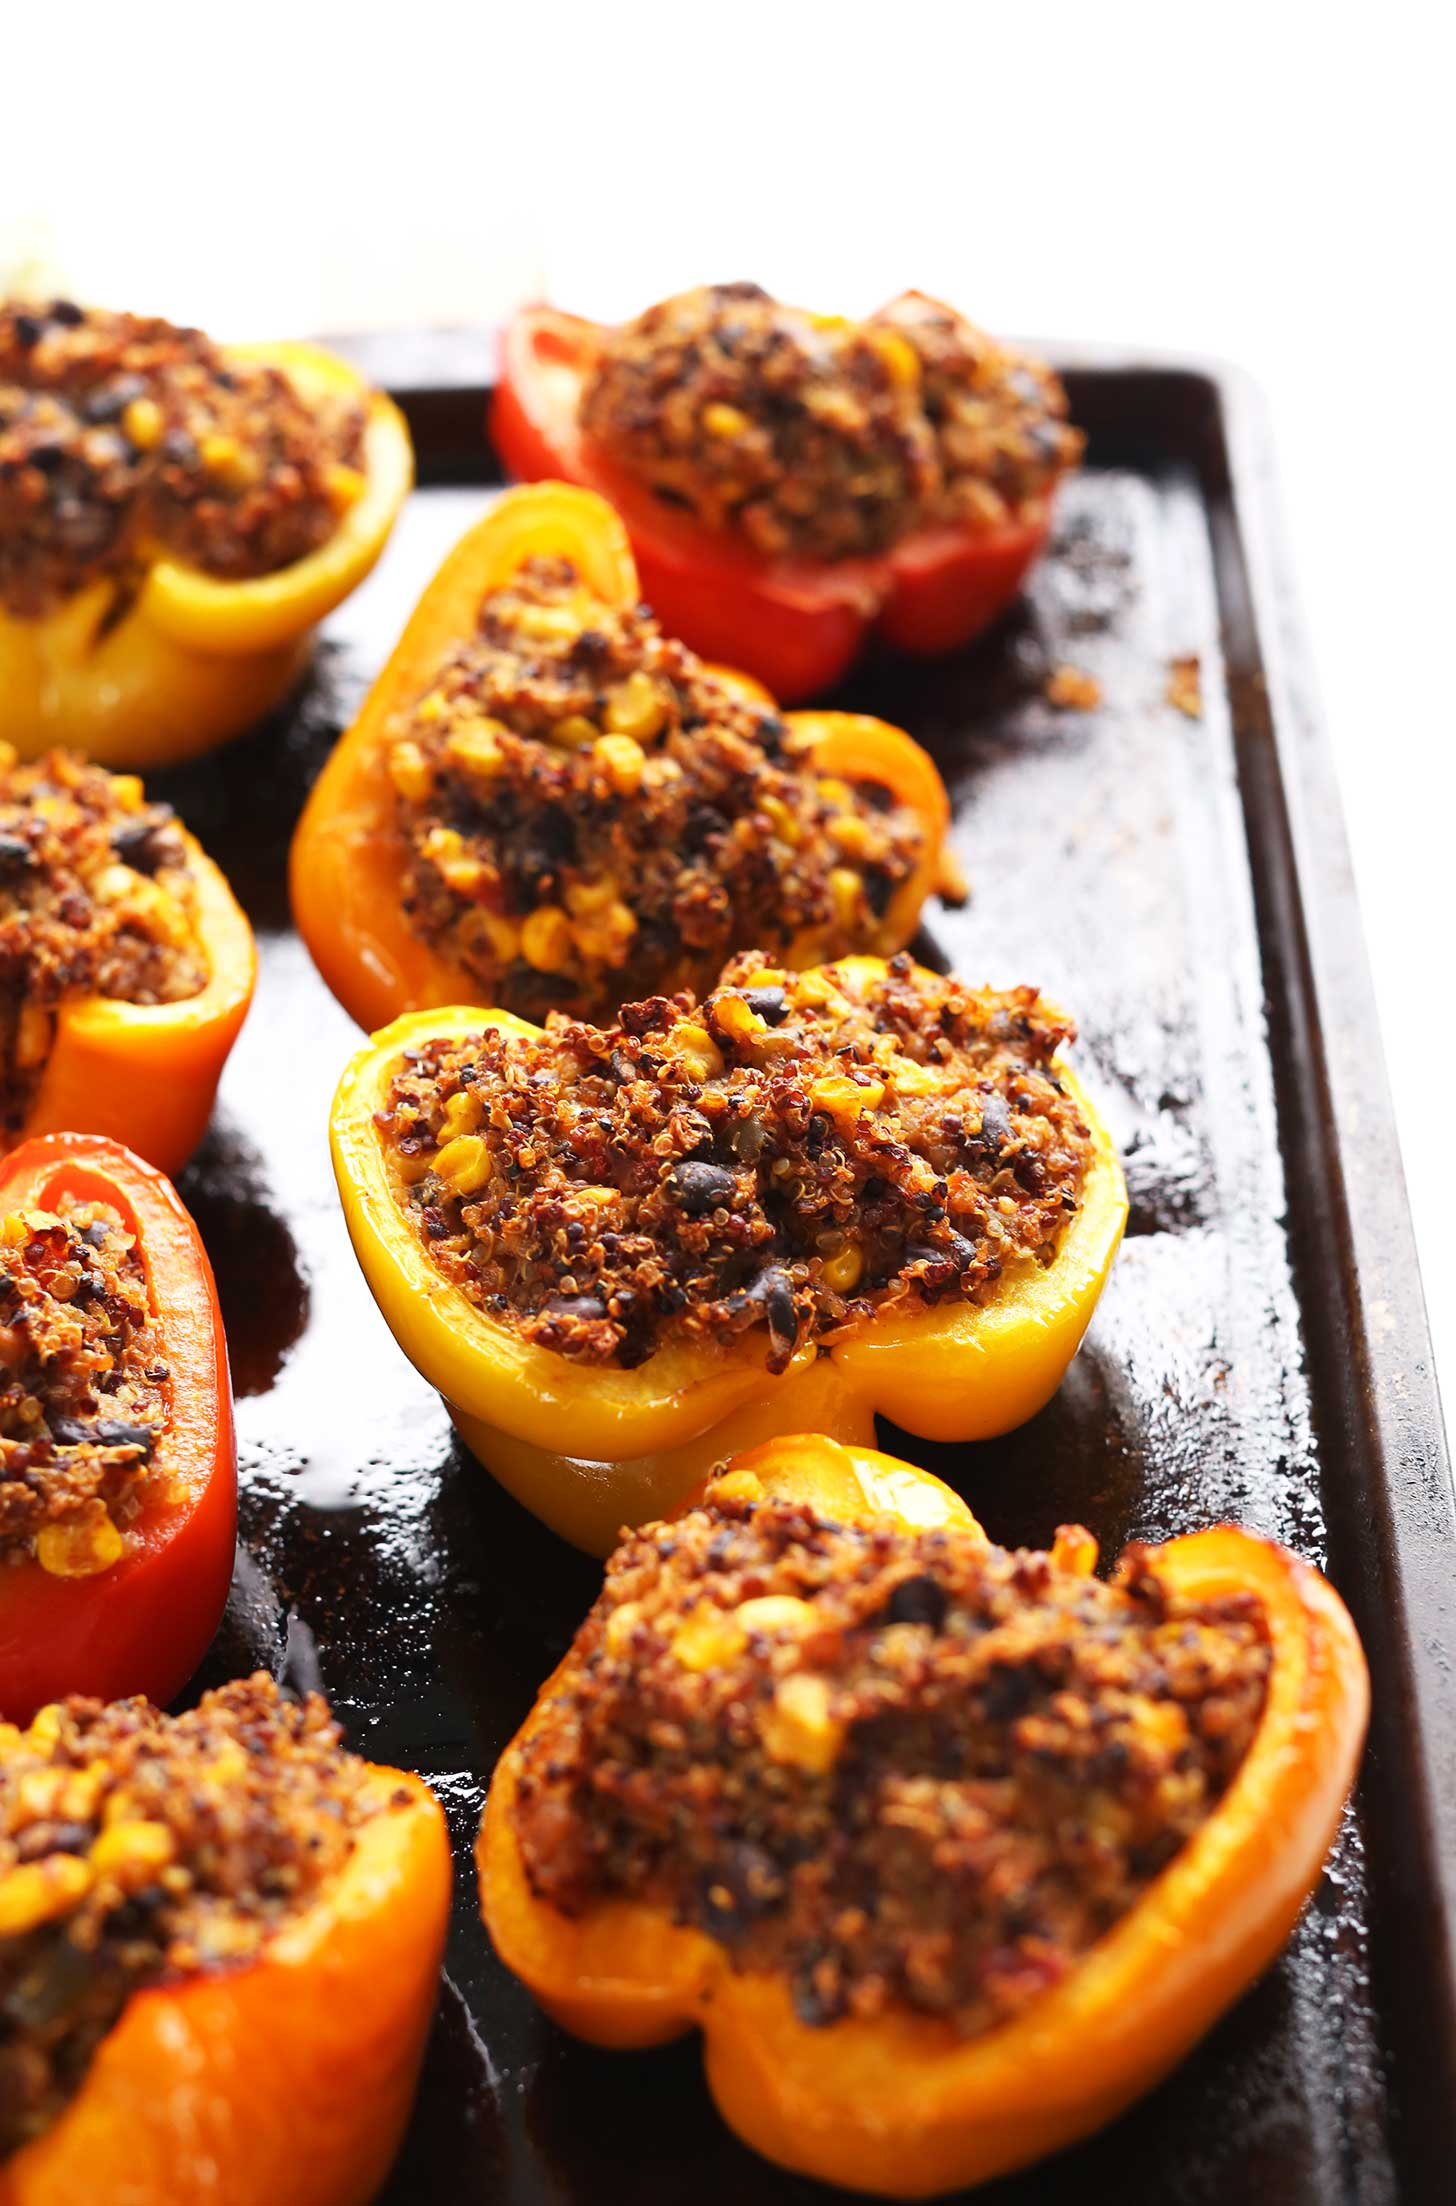 Baking sheet filled with protein-rich vegan Spanish Quinoa Stuffed Peppers